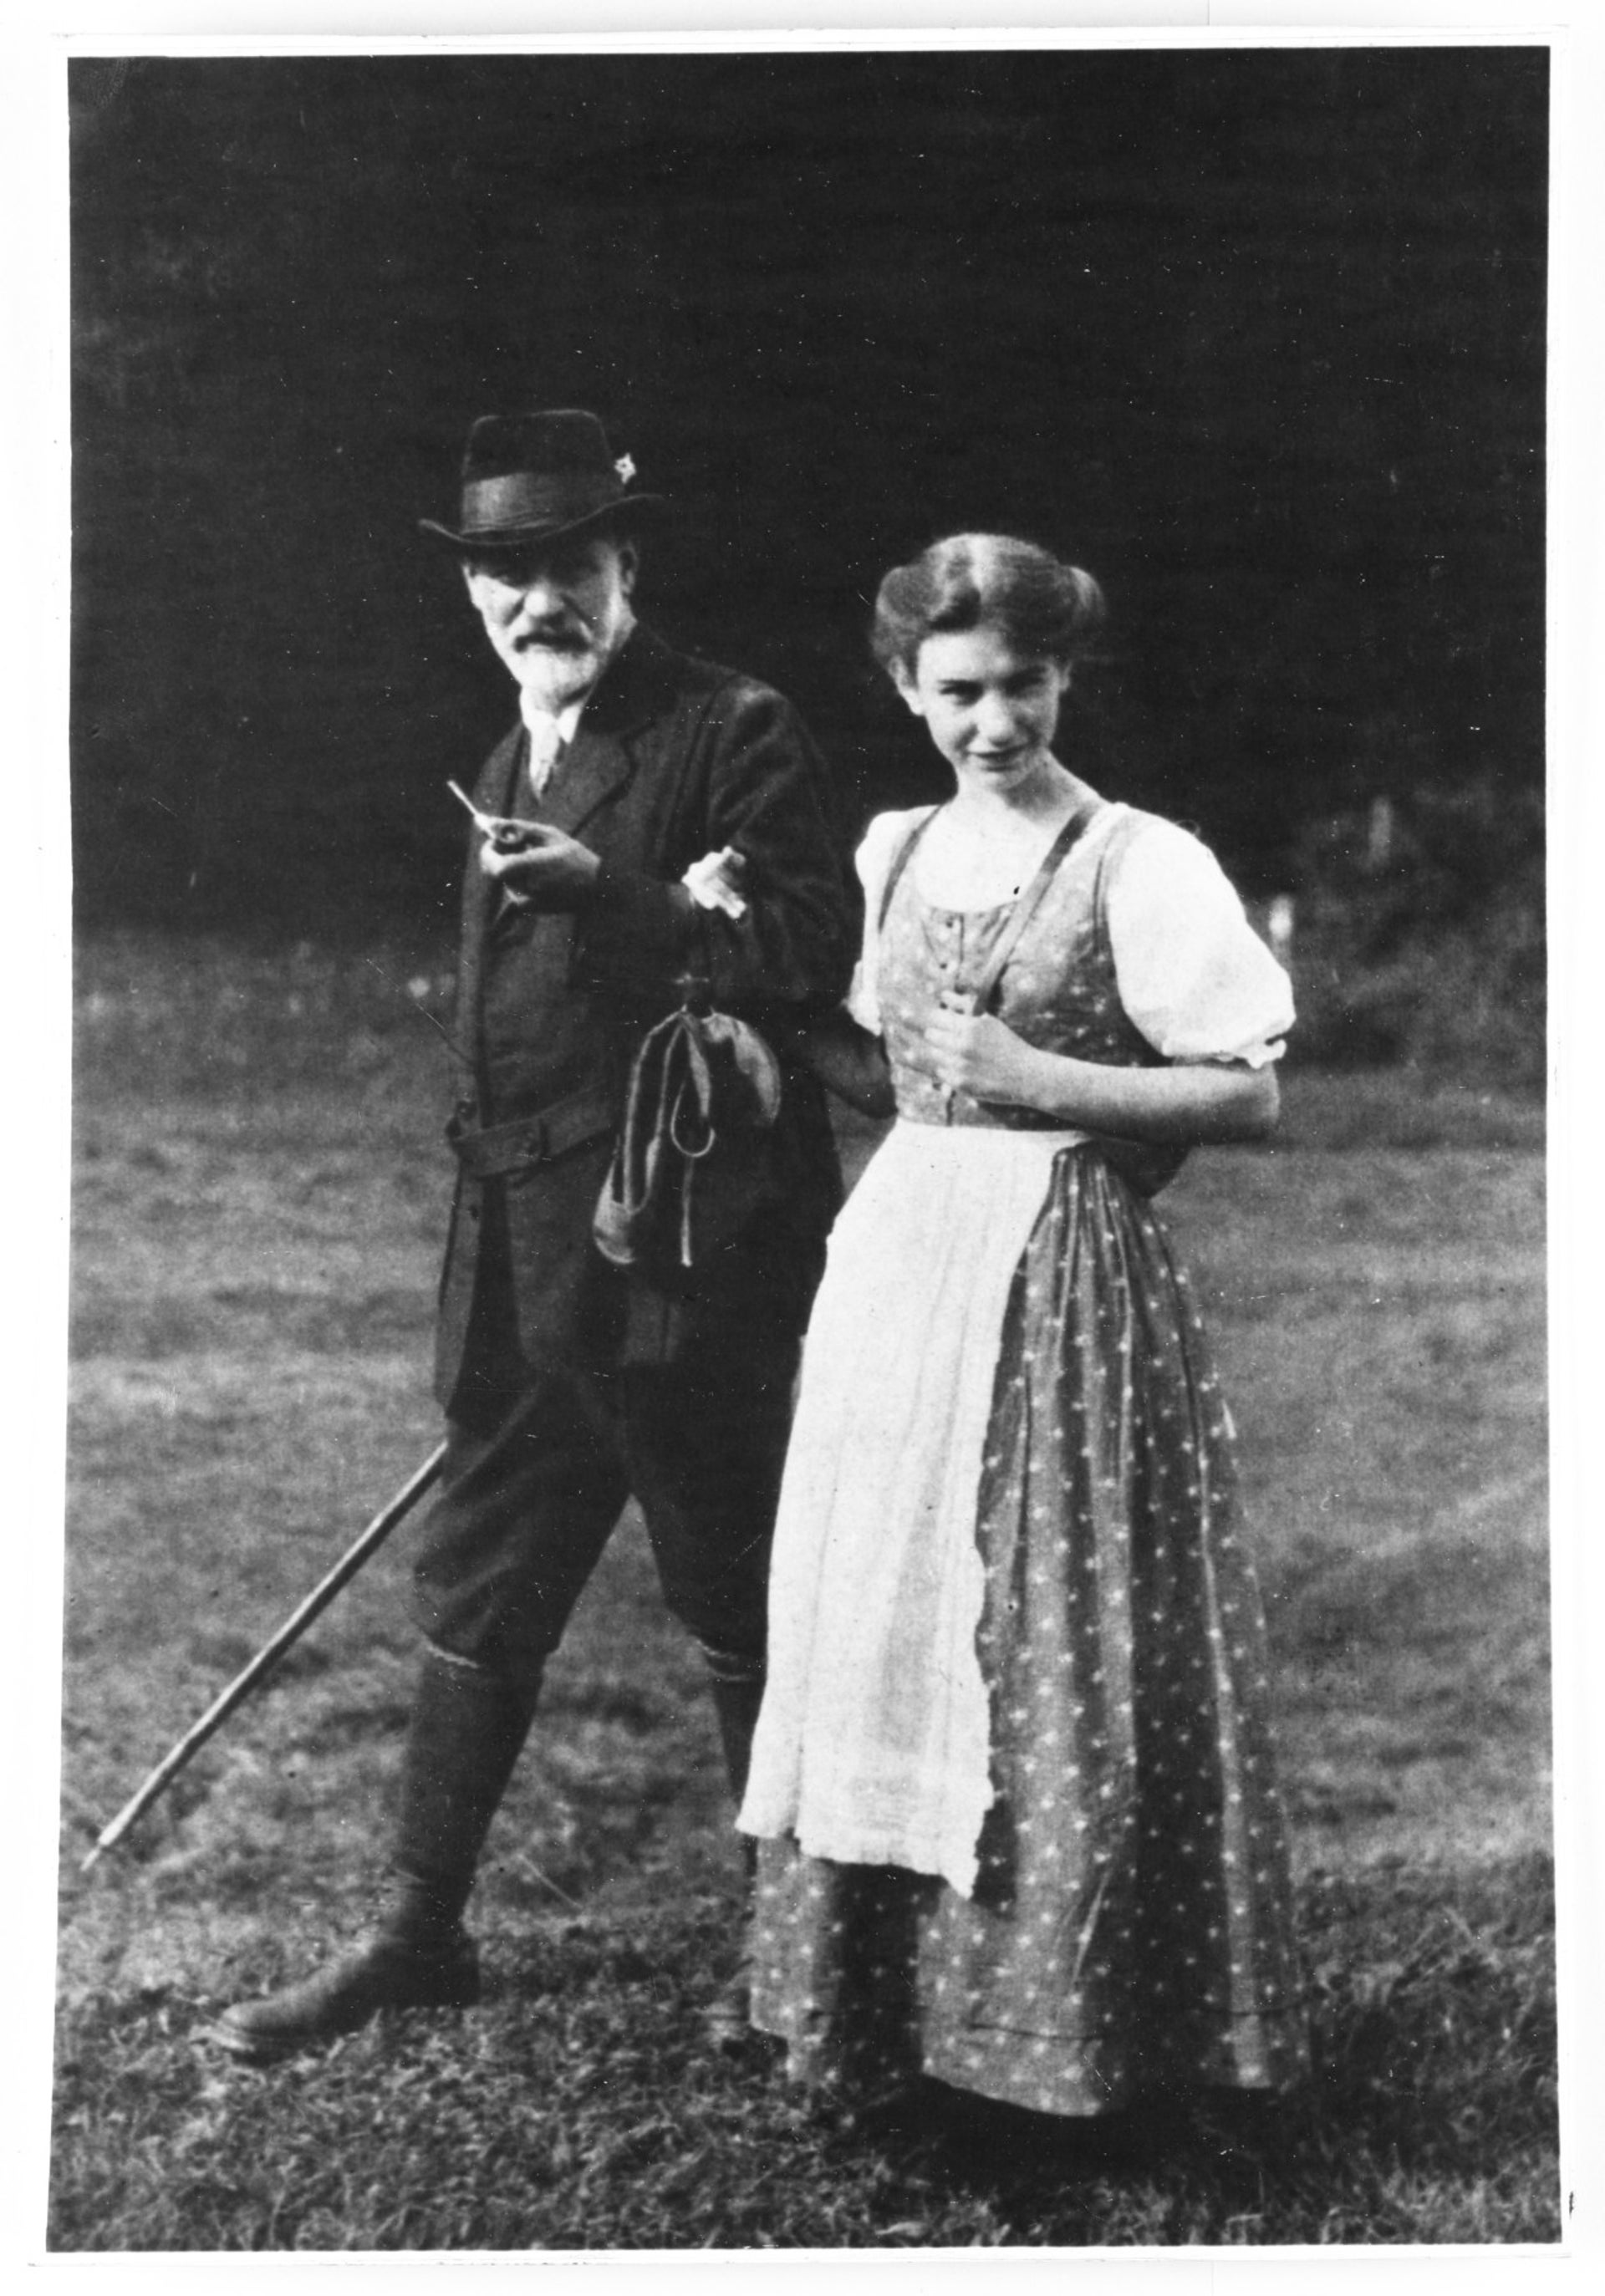 Sigmund Freud and his daughter Anna at the Dolomites in Italy, 1913.